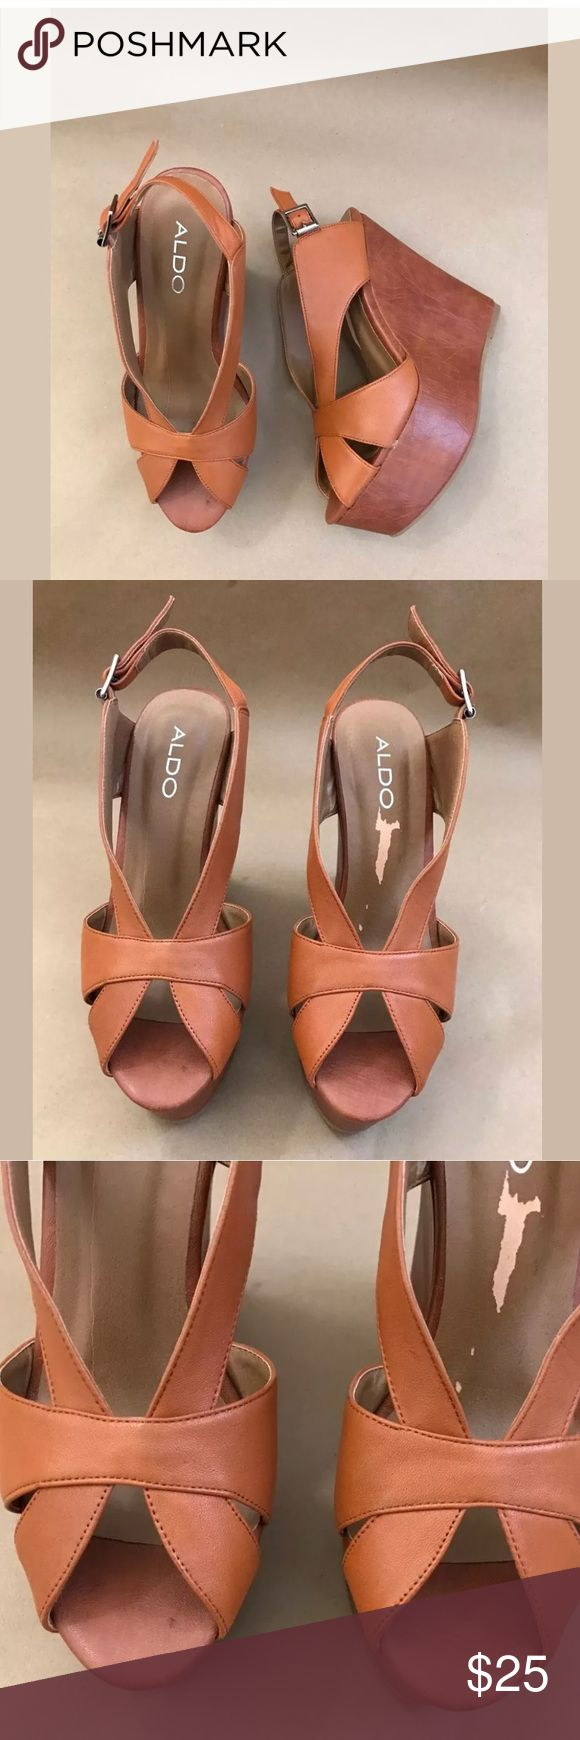 Aldo wedge platform slingback sandals size 6 Never been worn. Size 6. Brand: Aldo, color: Cognac, platform wedge Aldo Shoes Platforms